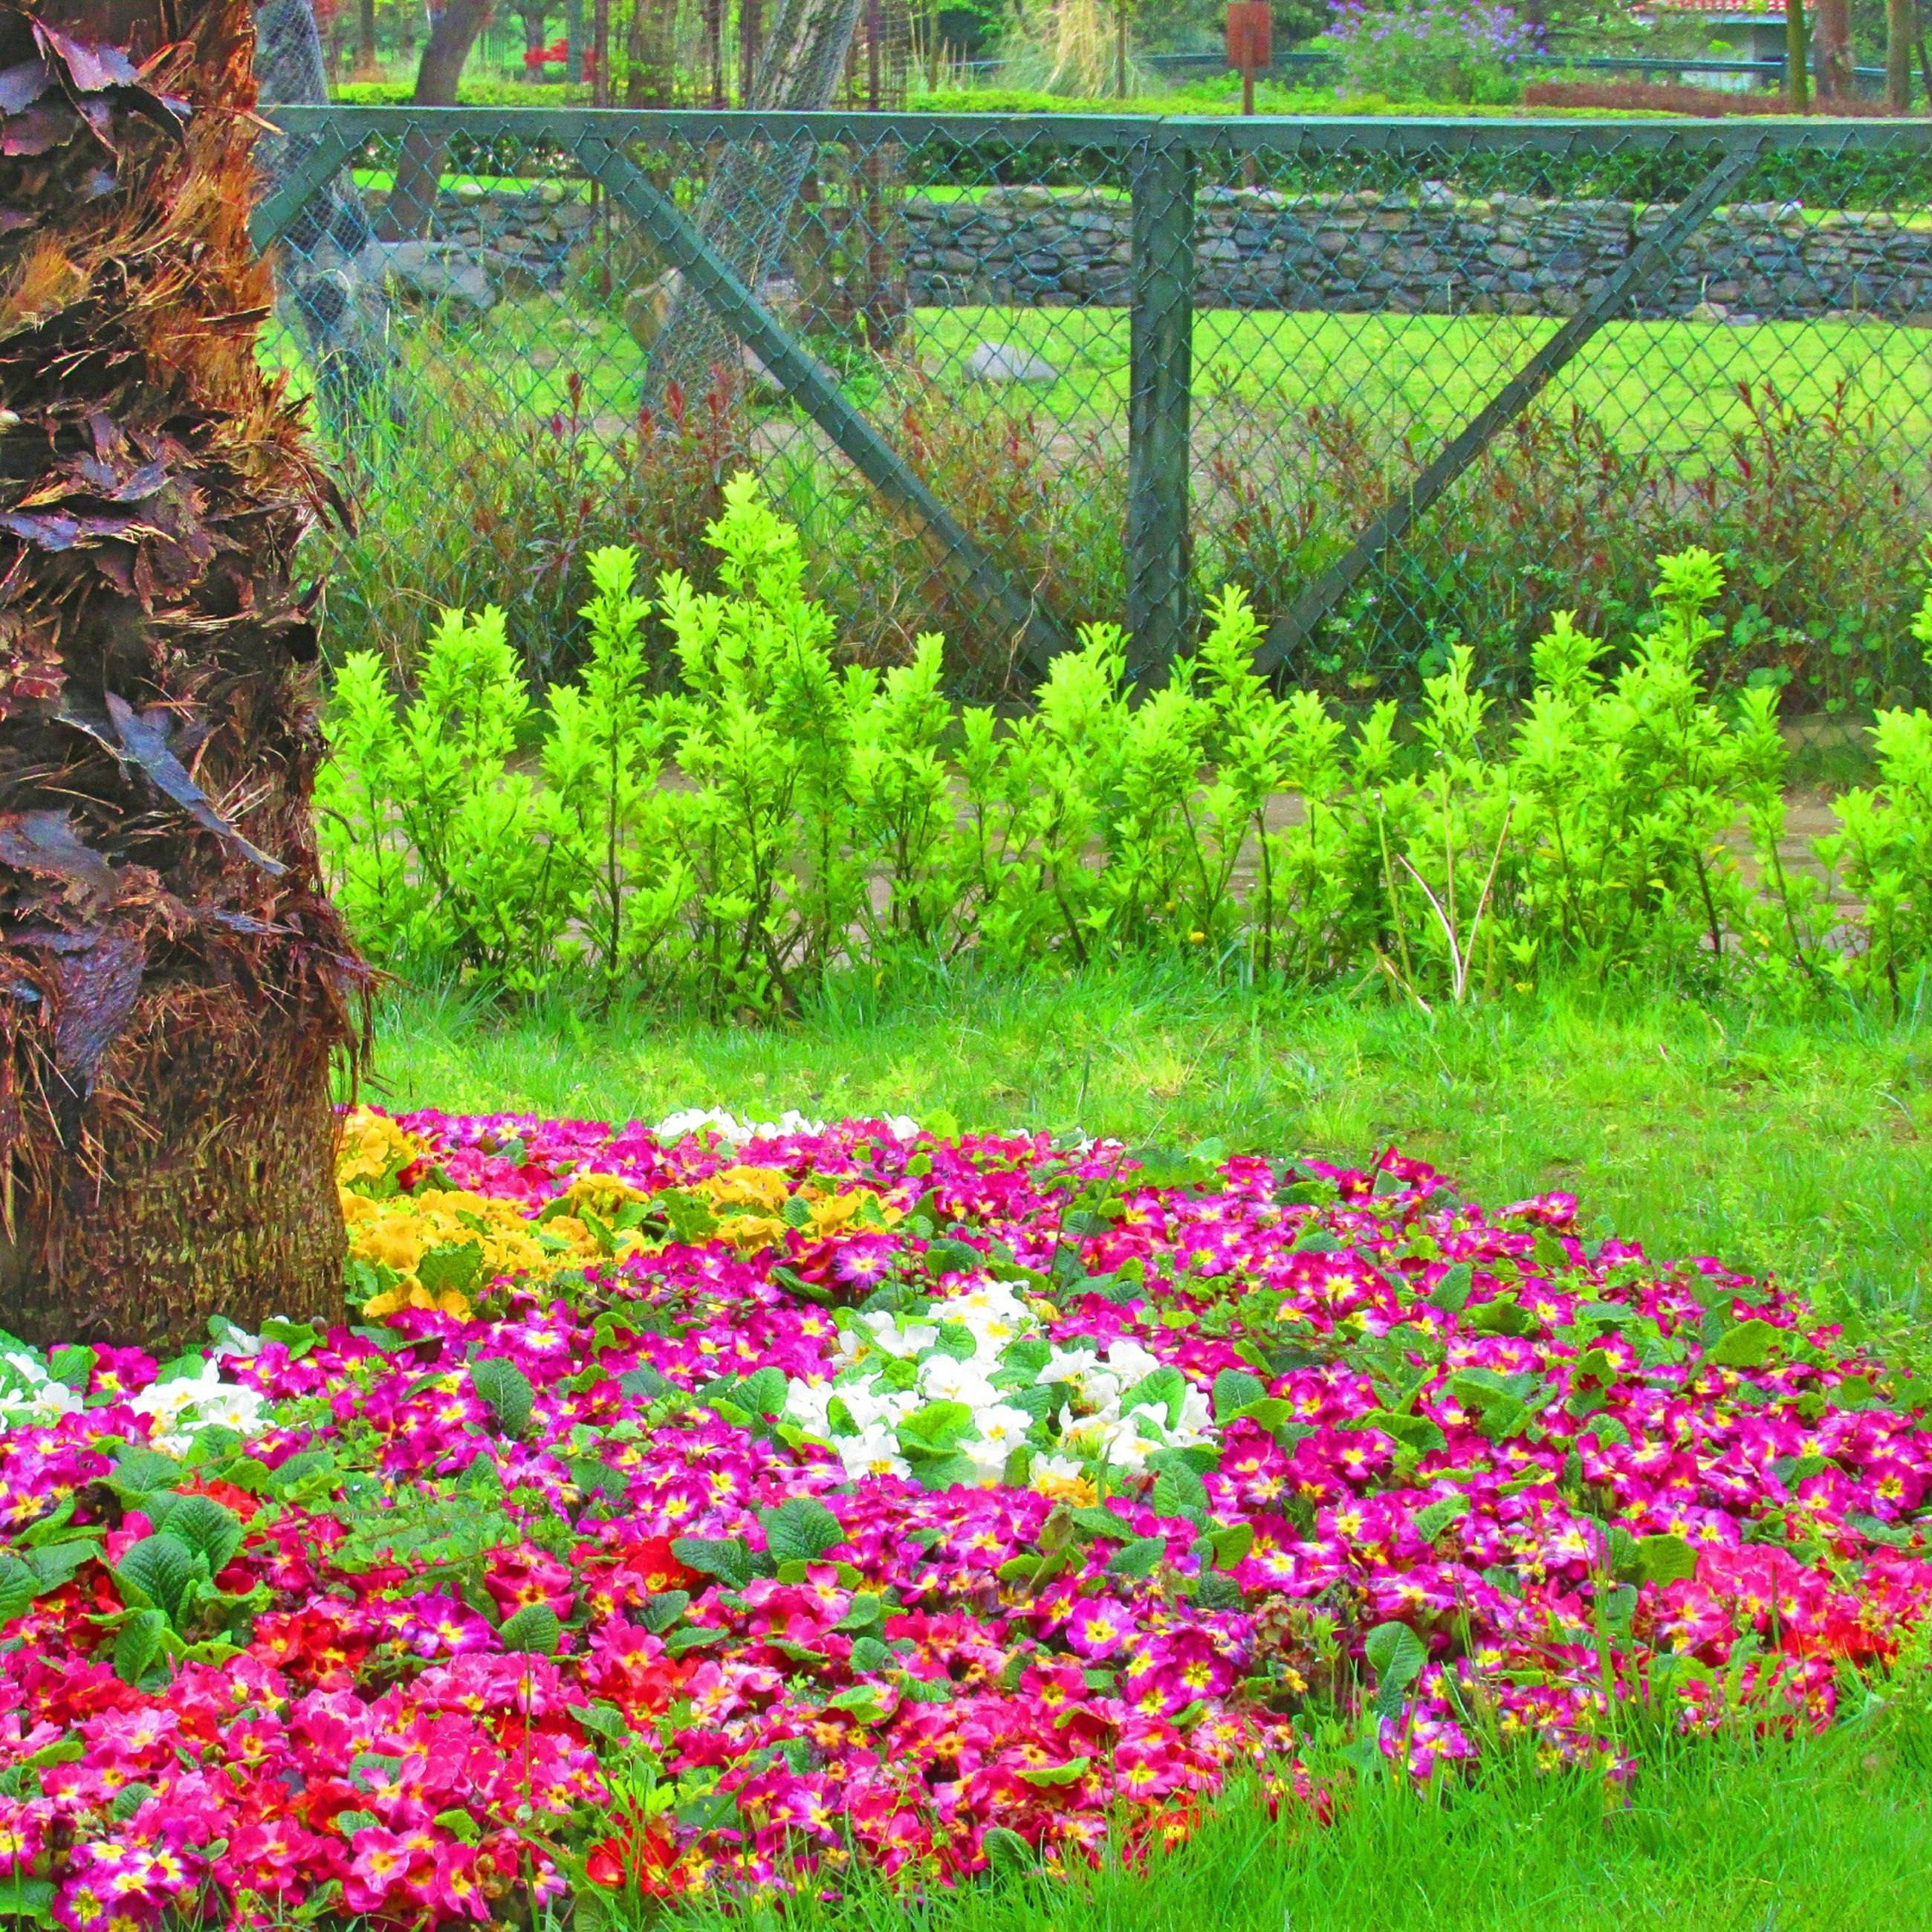 flower, growth, freshness, beauty in nature, fragility, nature, plant, blooming, park - man made space, petal, grass, tree, green color, in bloom, pink color, blossom, tranquility, garden, field, formal garden